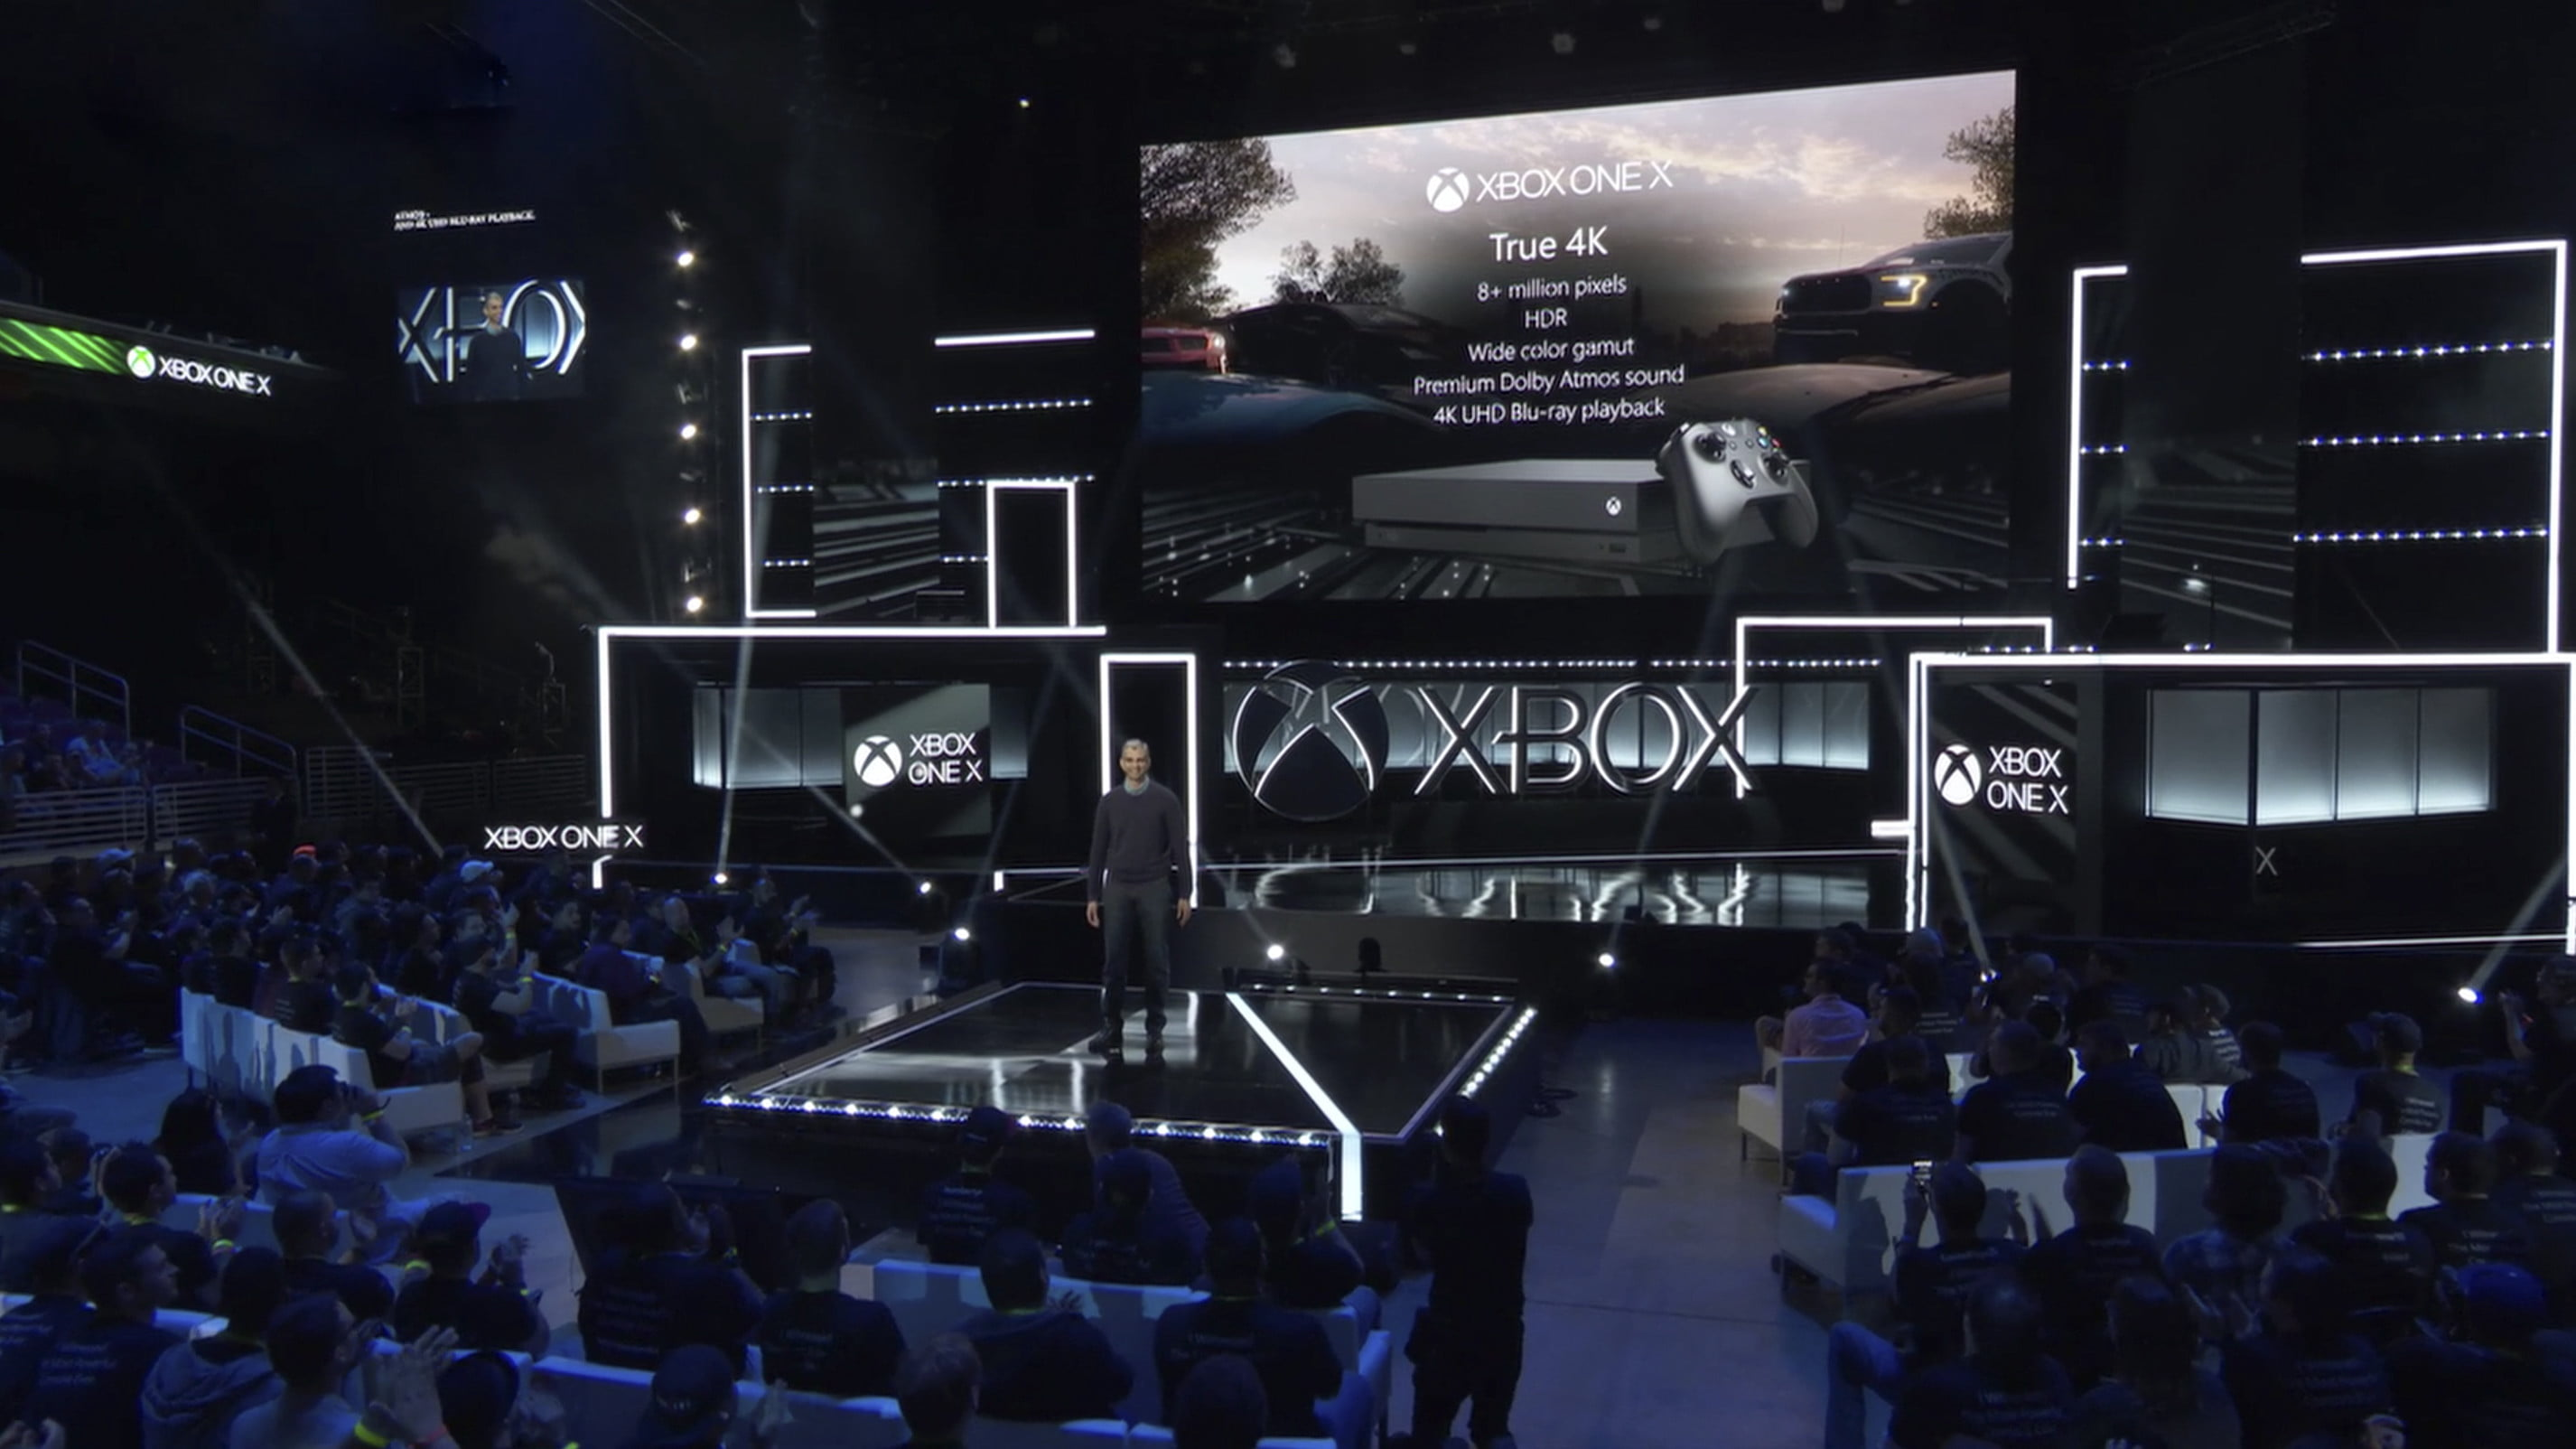 xbox one x announced screen shot 2017 06 11 at 2 07 05 pm